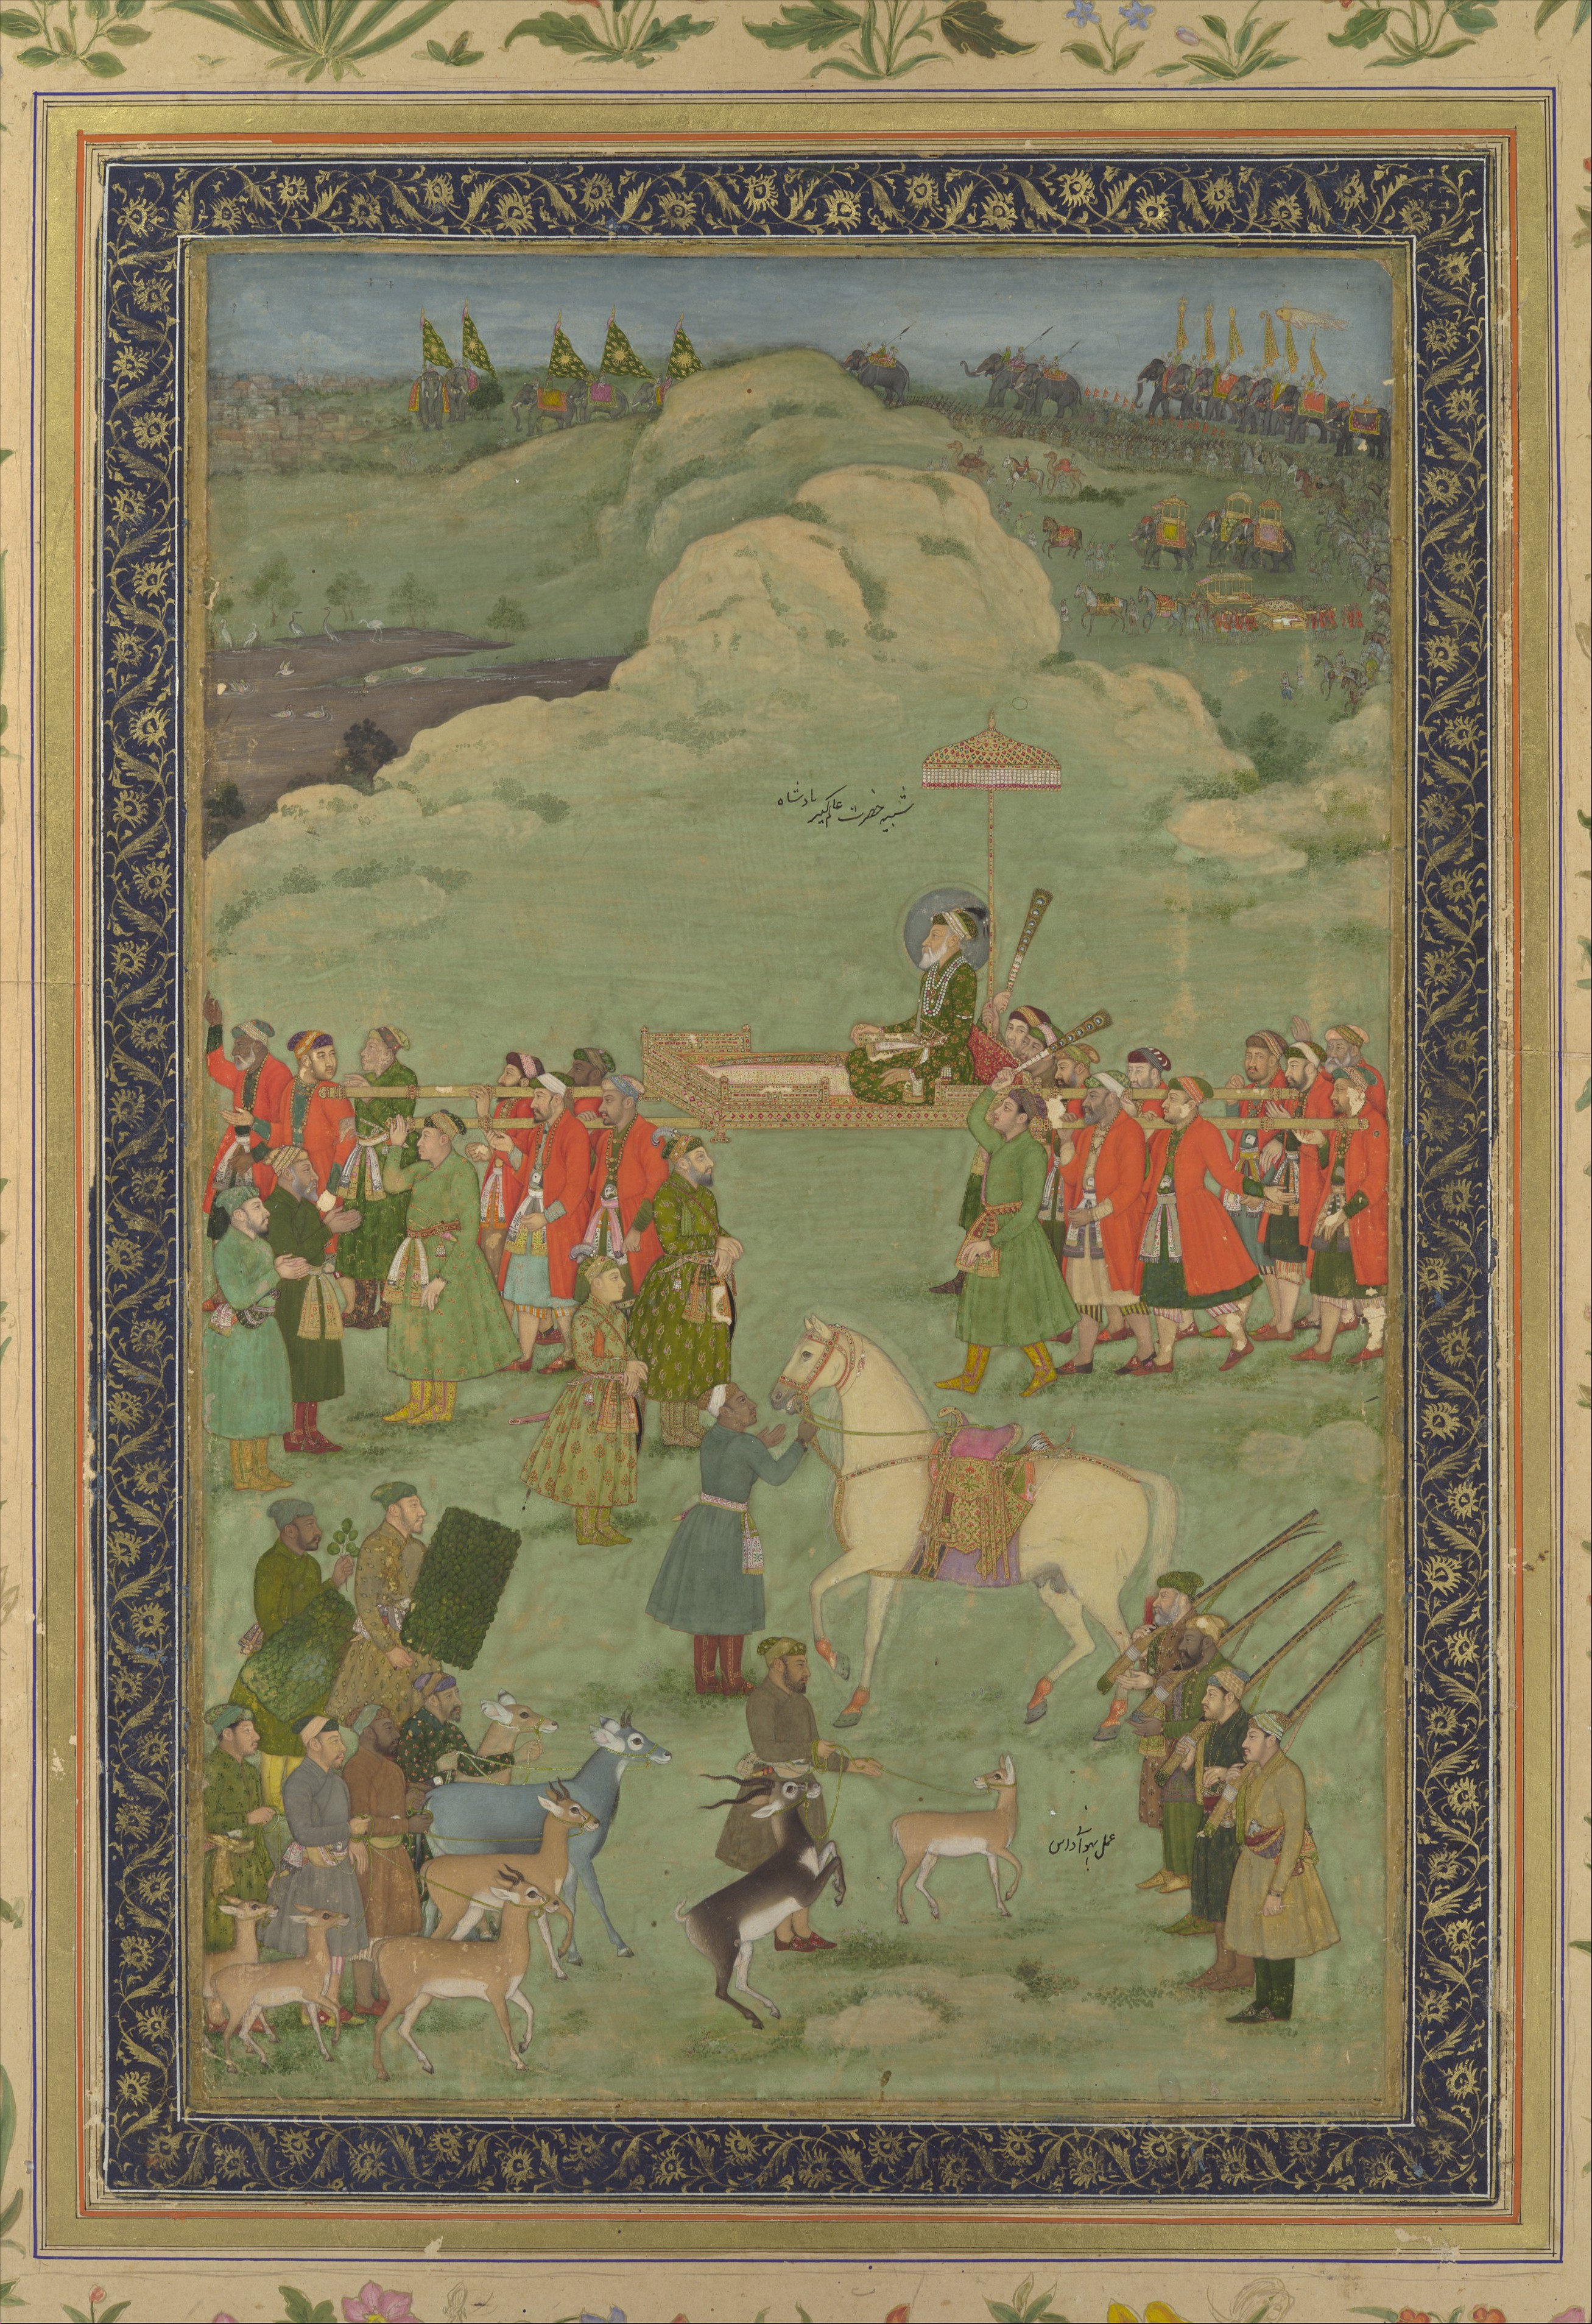 Painting By Bhavanidas The Emperor Aurangzeb Carried On